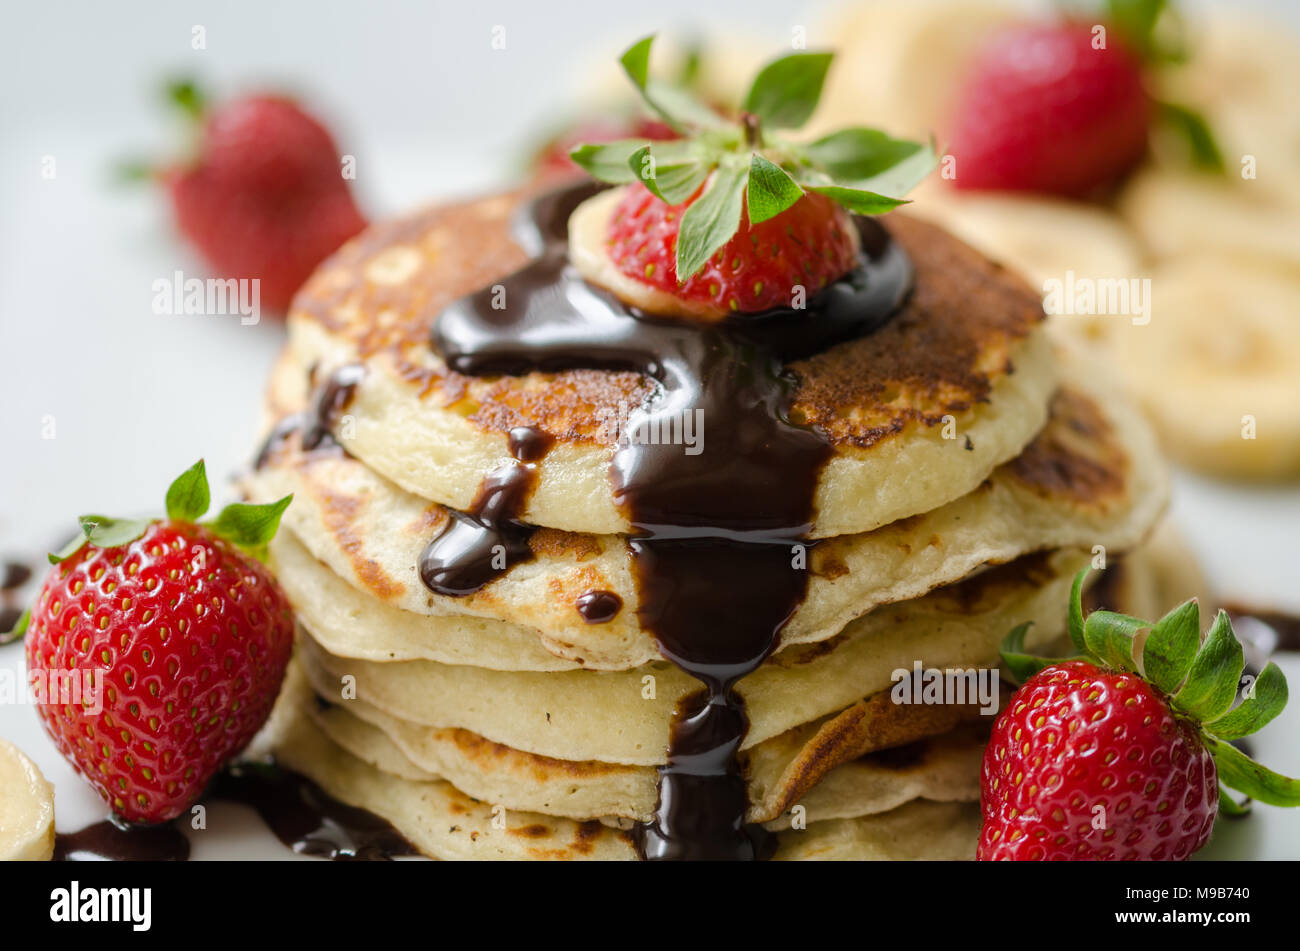 Stack of Turkish -style pancakes with Strawberry and chocolate - Stock Image